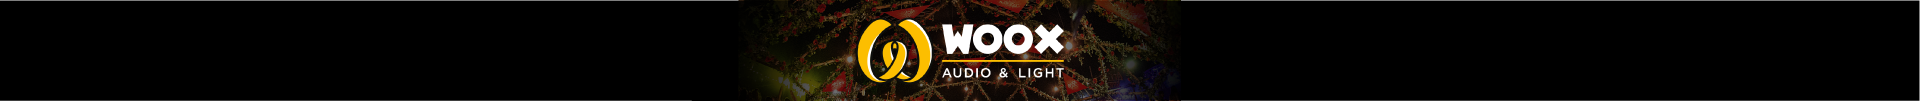 Woox Audio & Light header